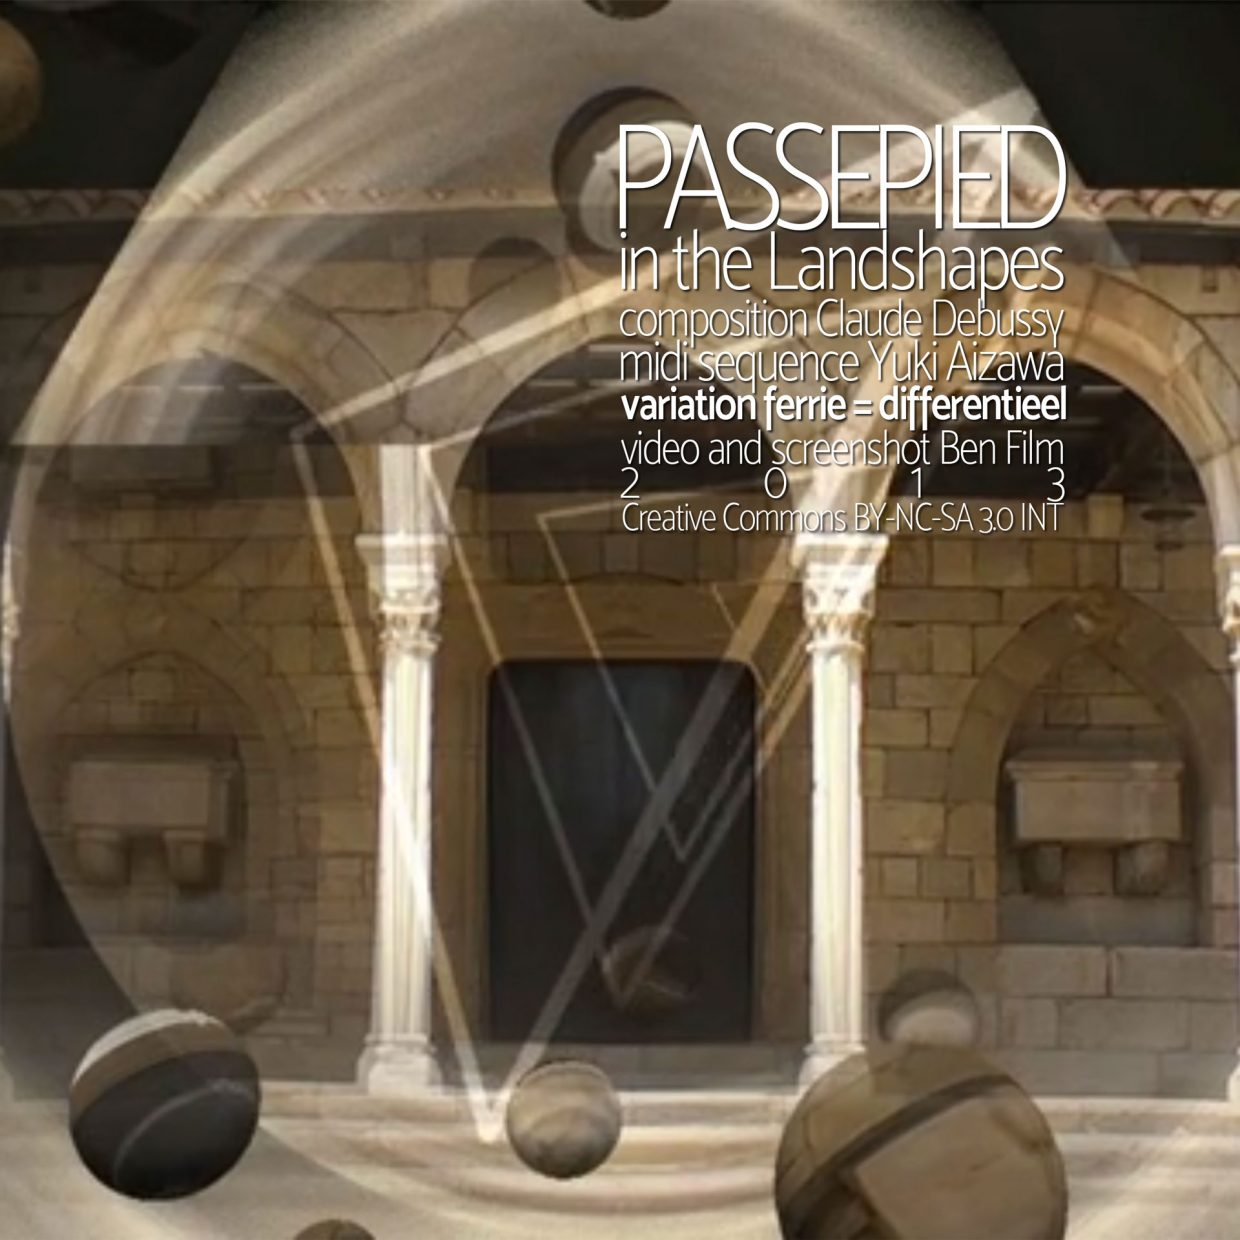 Passepied in the Landshapes cover